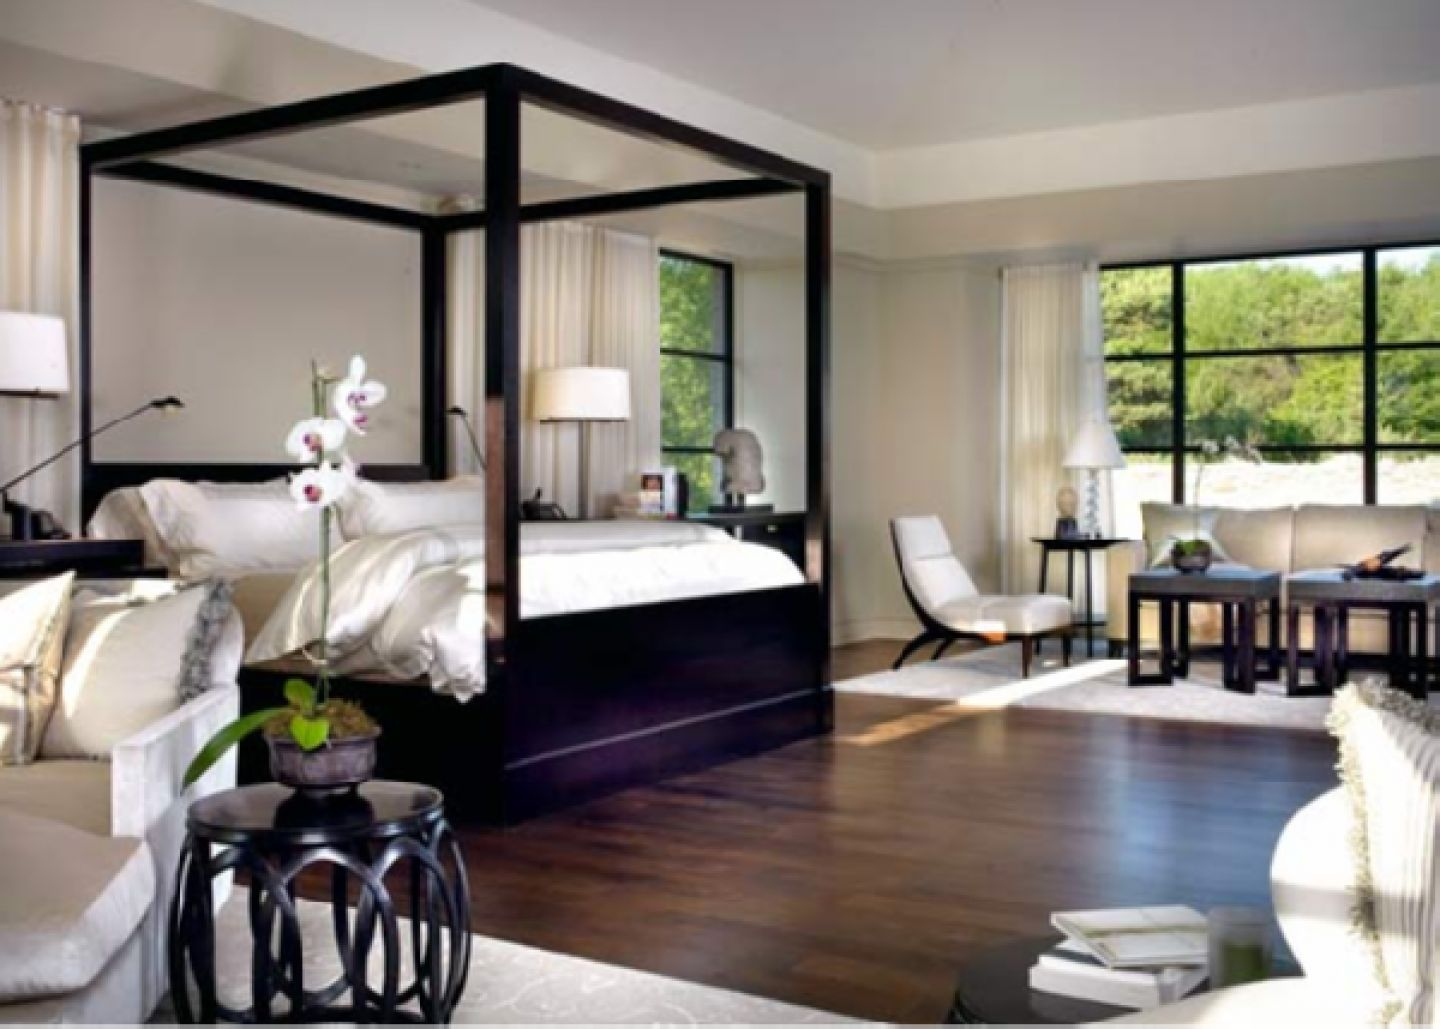 Black Canopy Bedroom Sets and White Bedding Placed inside Cozy Bedroom with Fluffy Sofas and Dark Tables